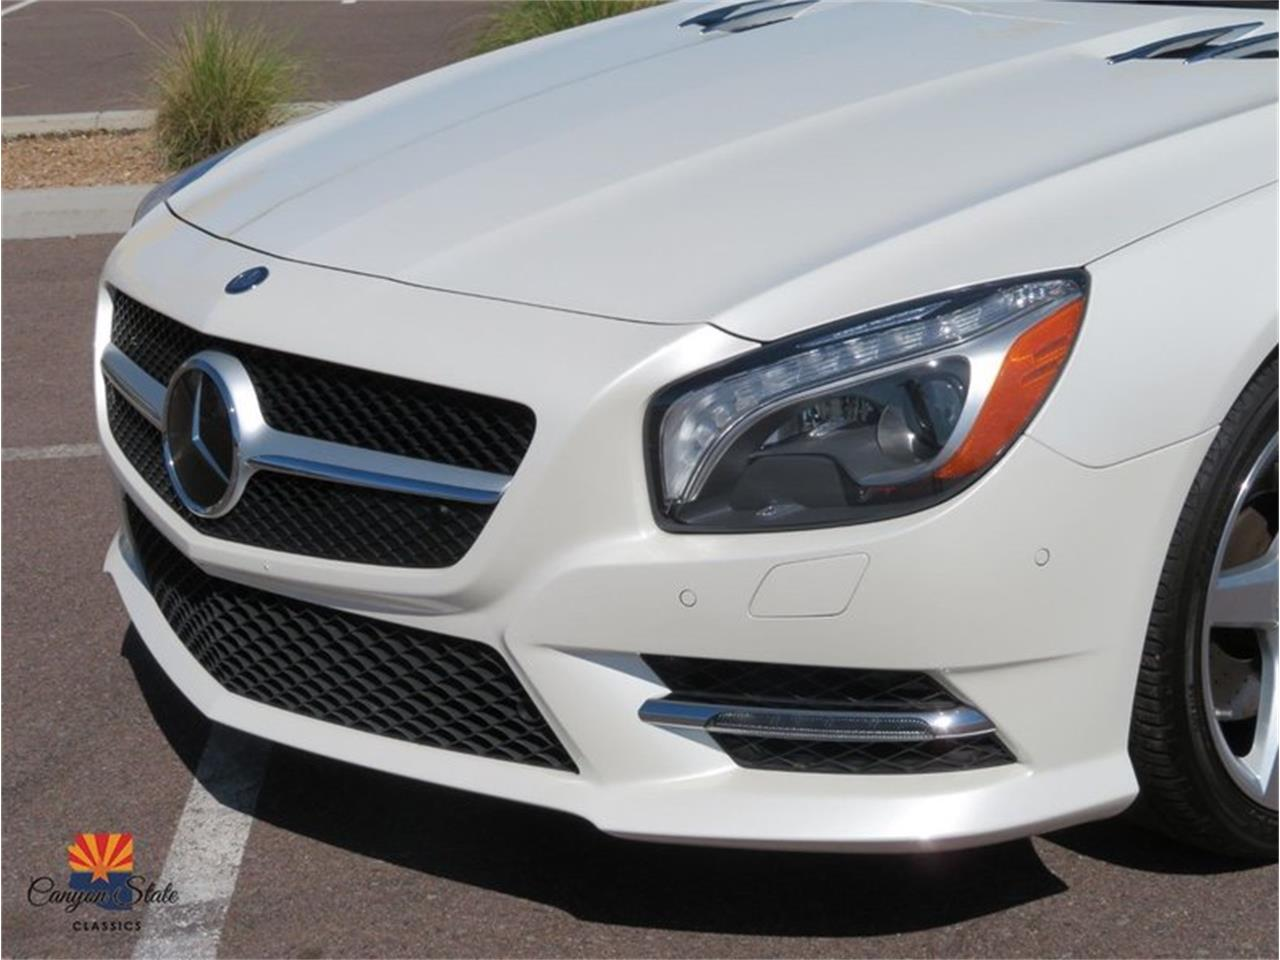 2013 Mercedes-Benz SL-Class for sale in Tempe, AZ – photo 37